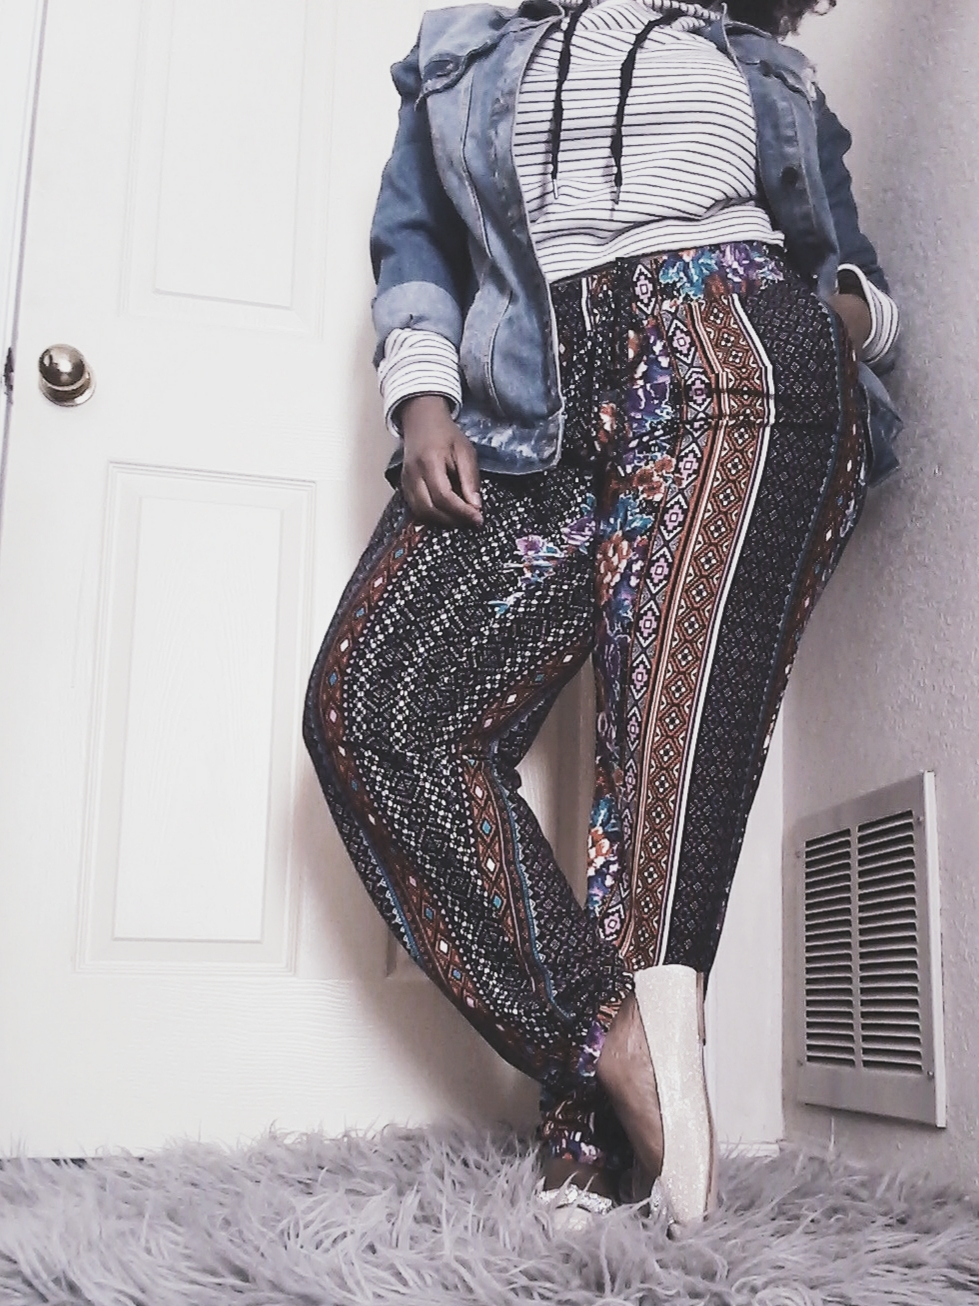 JustNatonya Style Inspiration: How to Wear Layers and Mixed Prints